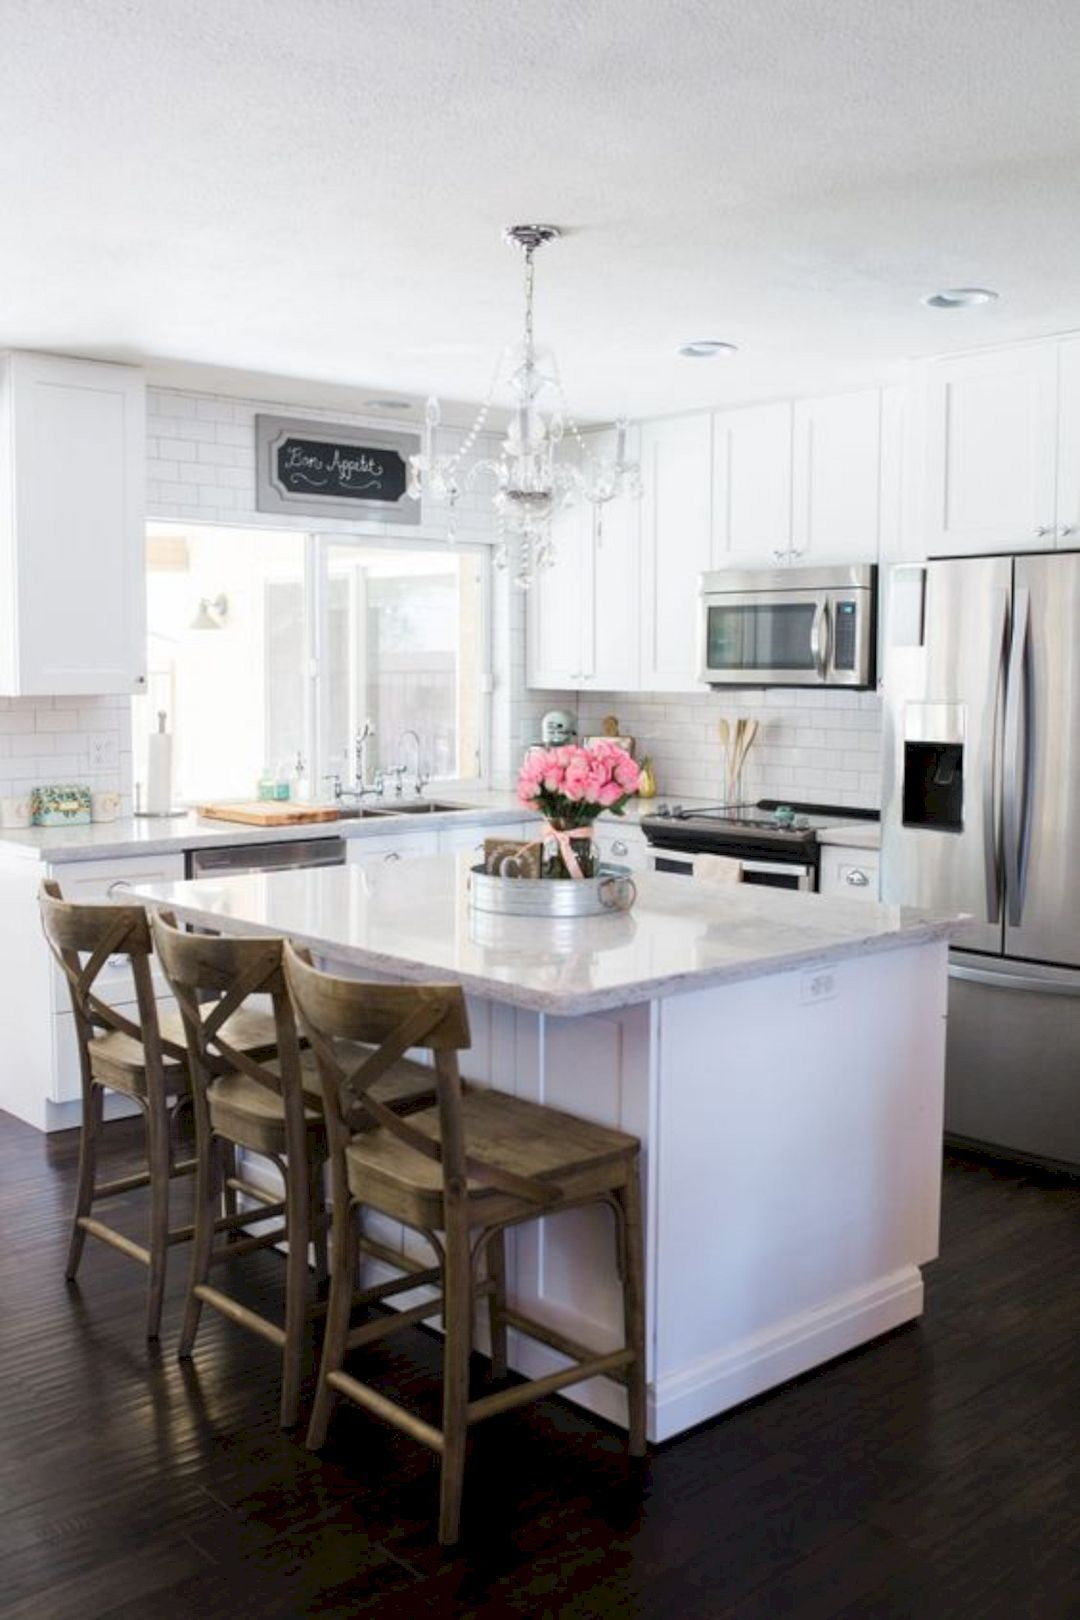 16 Top Kitchen Renovation Ideas | Kitchens, Remodeling ideas and House